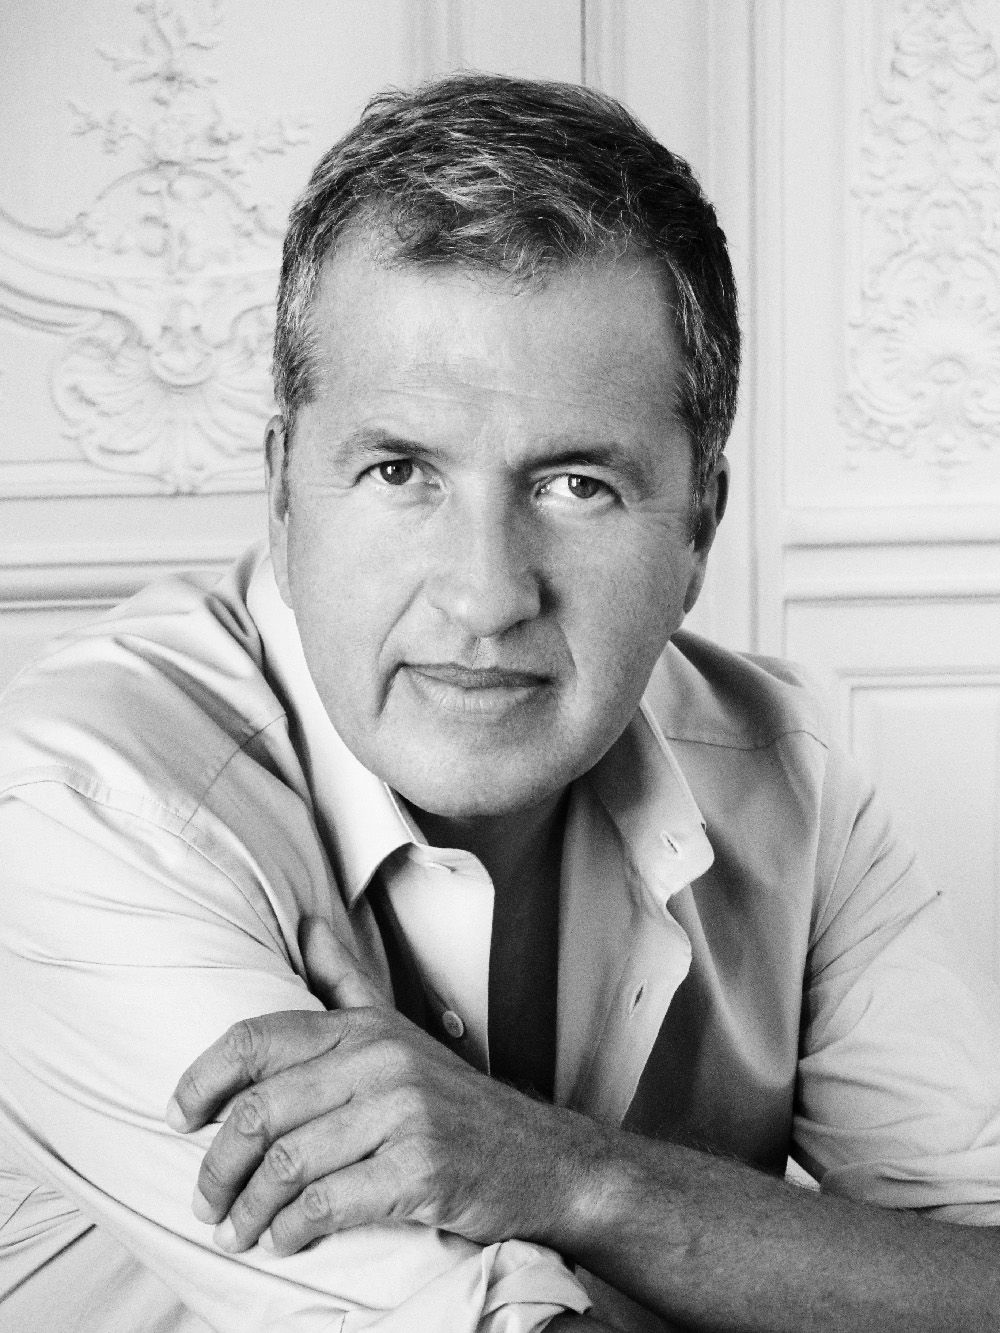 Mario Testino with a weight of 70 kg and a feet size of N/A in favorite outfit & clothing style